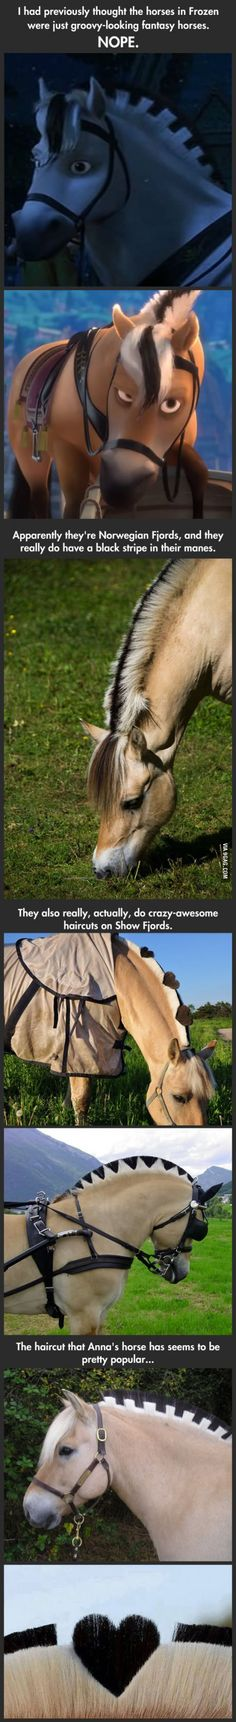 Frozen is overrated, but these horses are cool